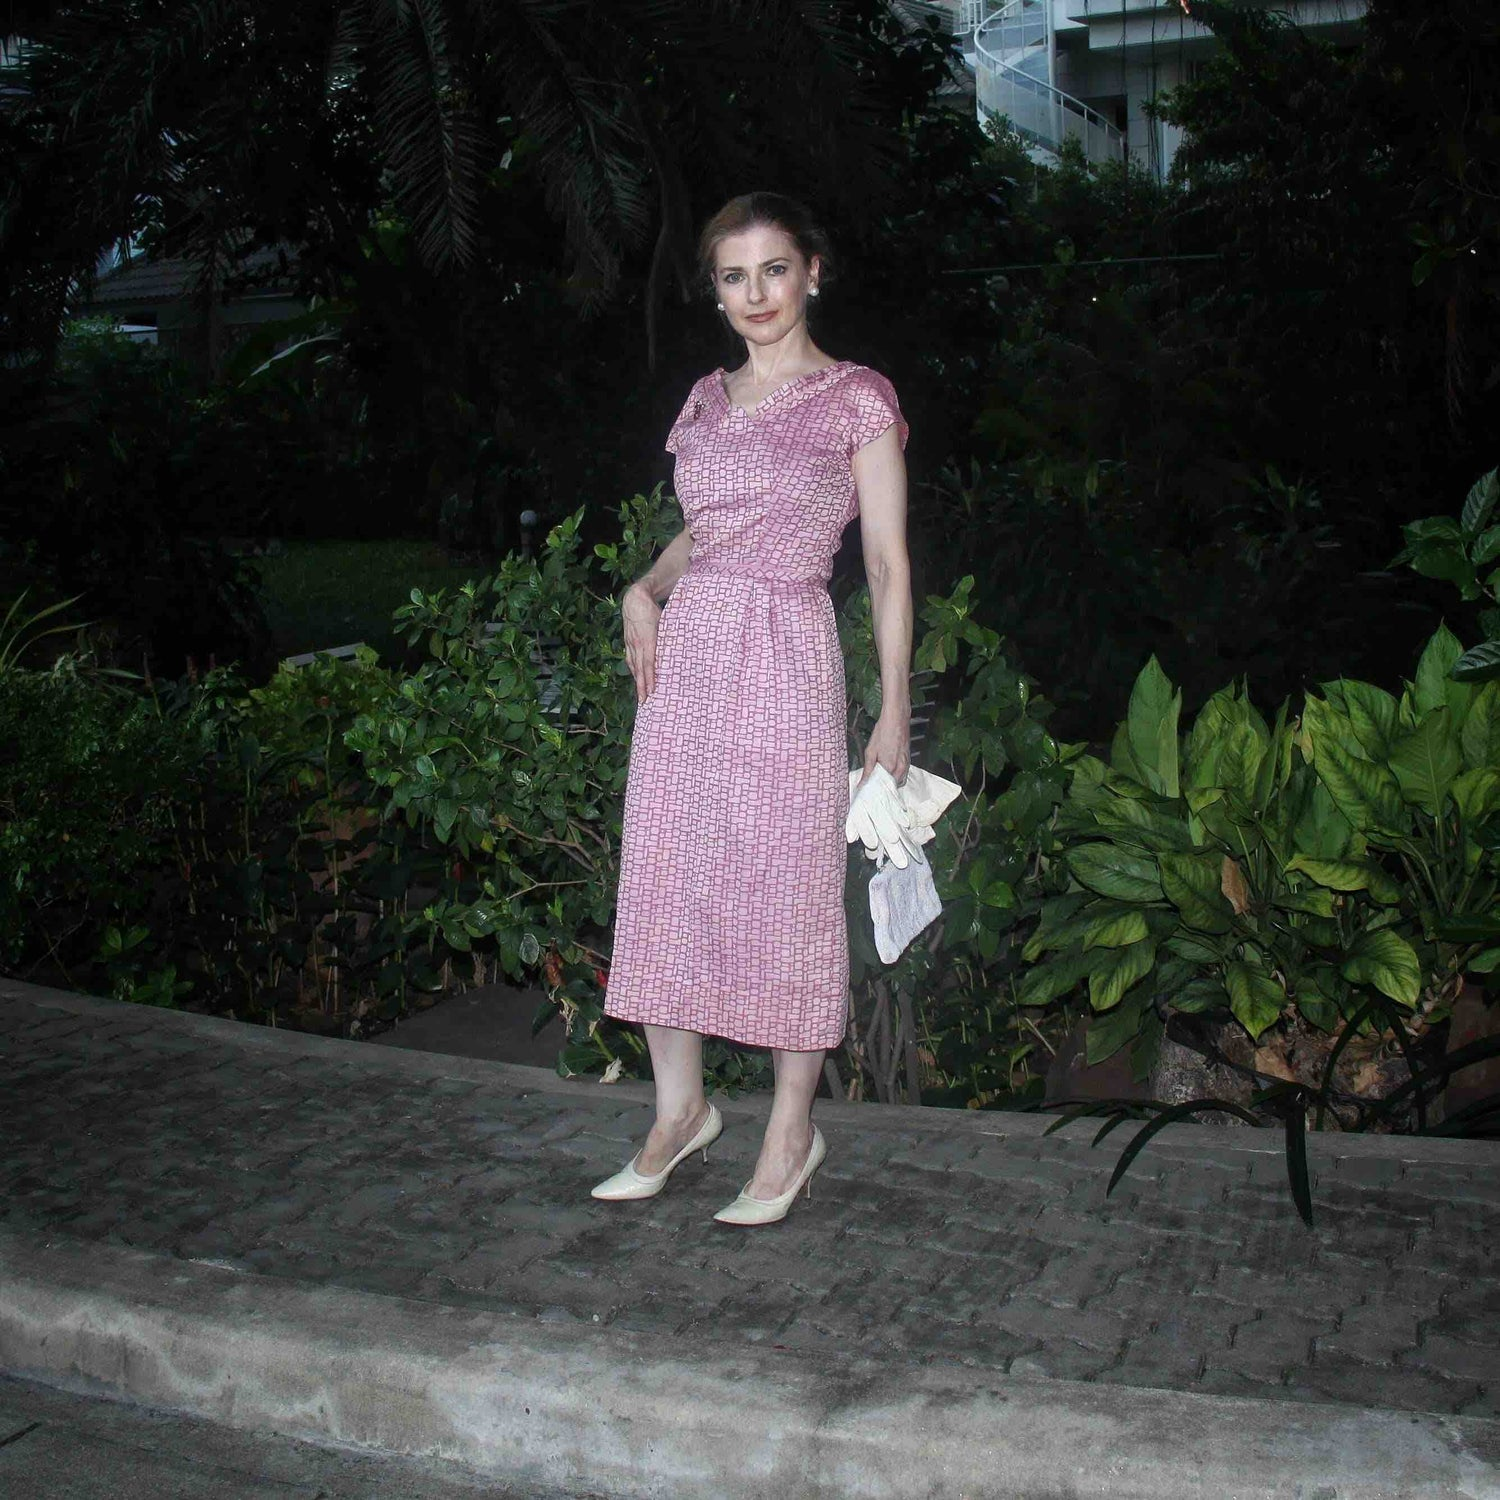 Image of Adele Simpson 1950s Orchid Dress